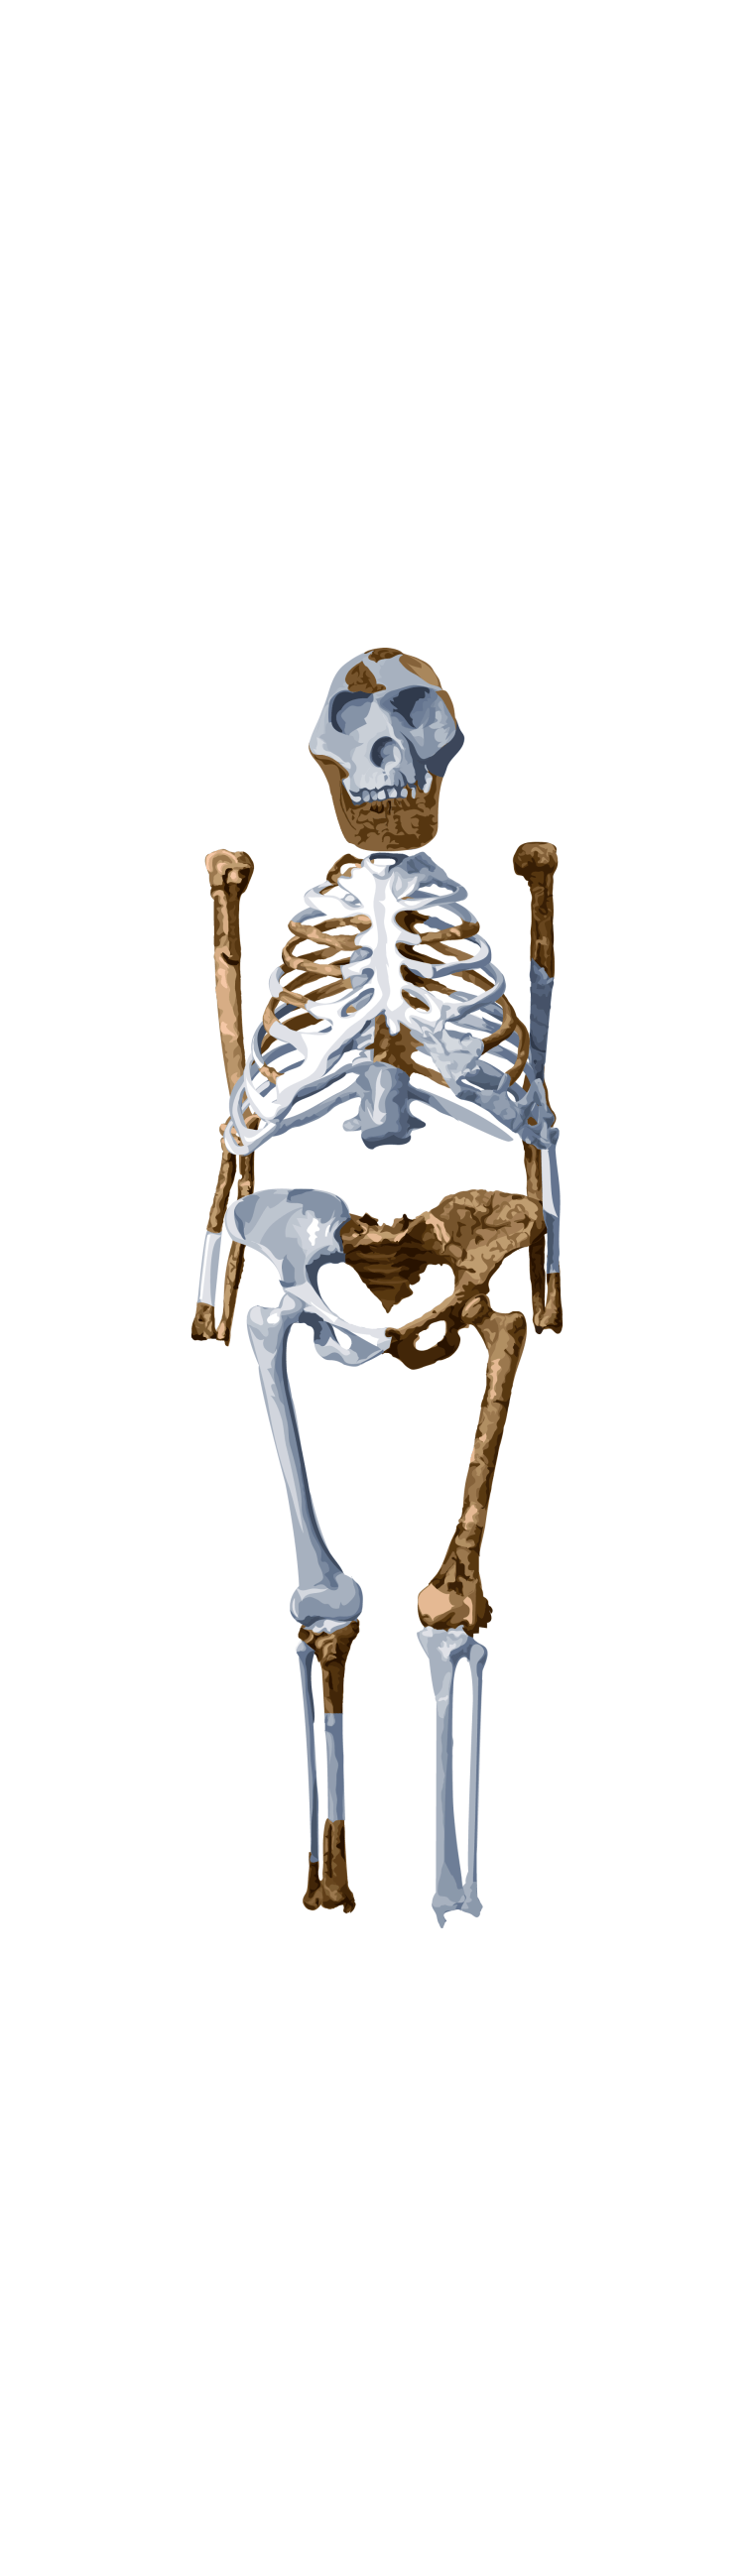 Pre-Human Lucy Climbed Trees, Scans Show